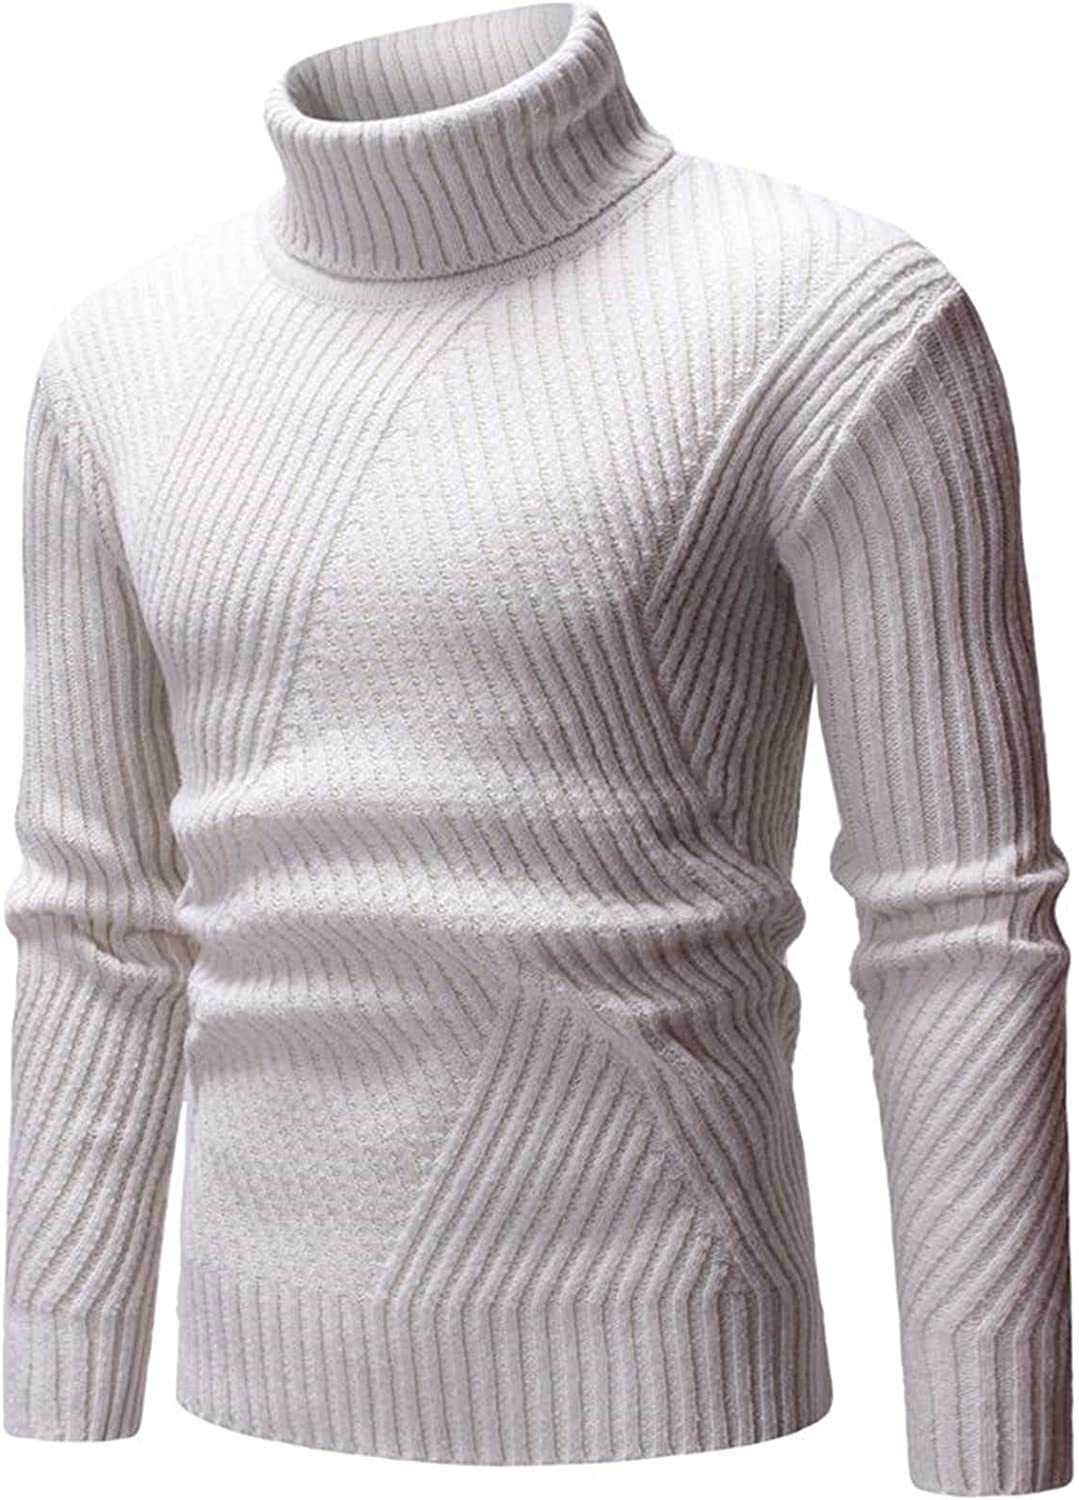 XXBR Turtleneck Sweater for Mens, Fall High Neck Knitted Pullover Long Sleeve Workout Slim Fit Basic Casual Jumper Tops